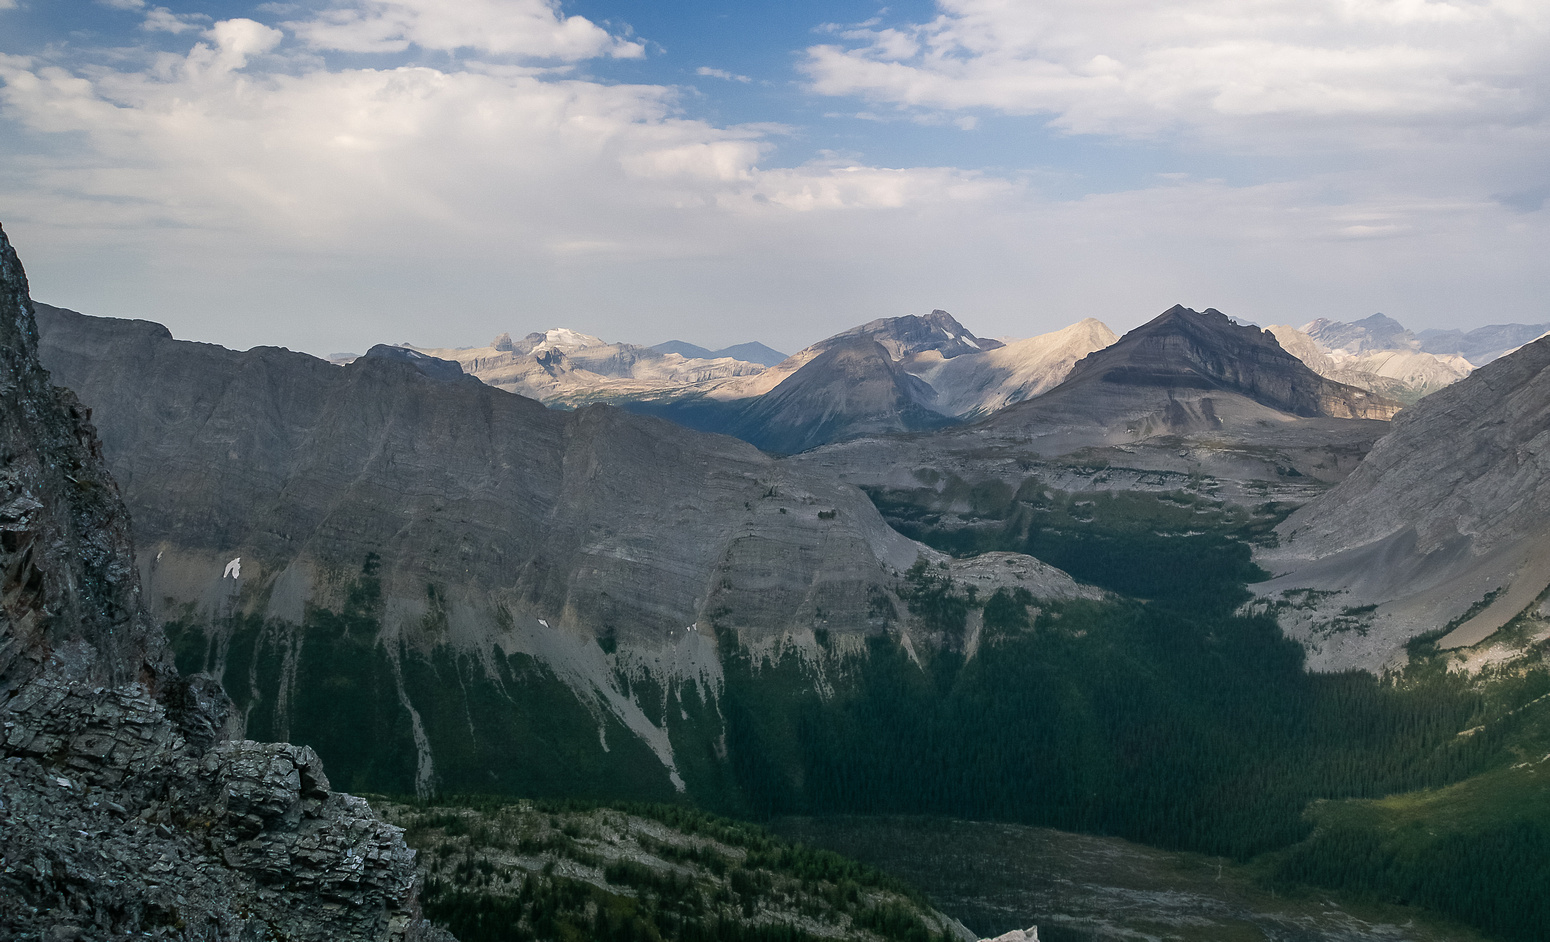 Looking over Burstall Pass towards Talon, Leval, White Man, Vavasour and Snow Peak.